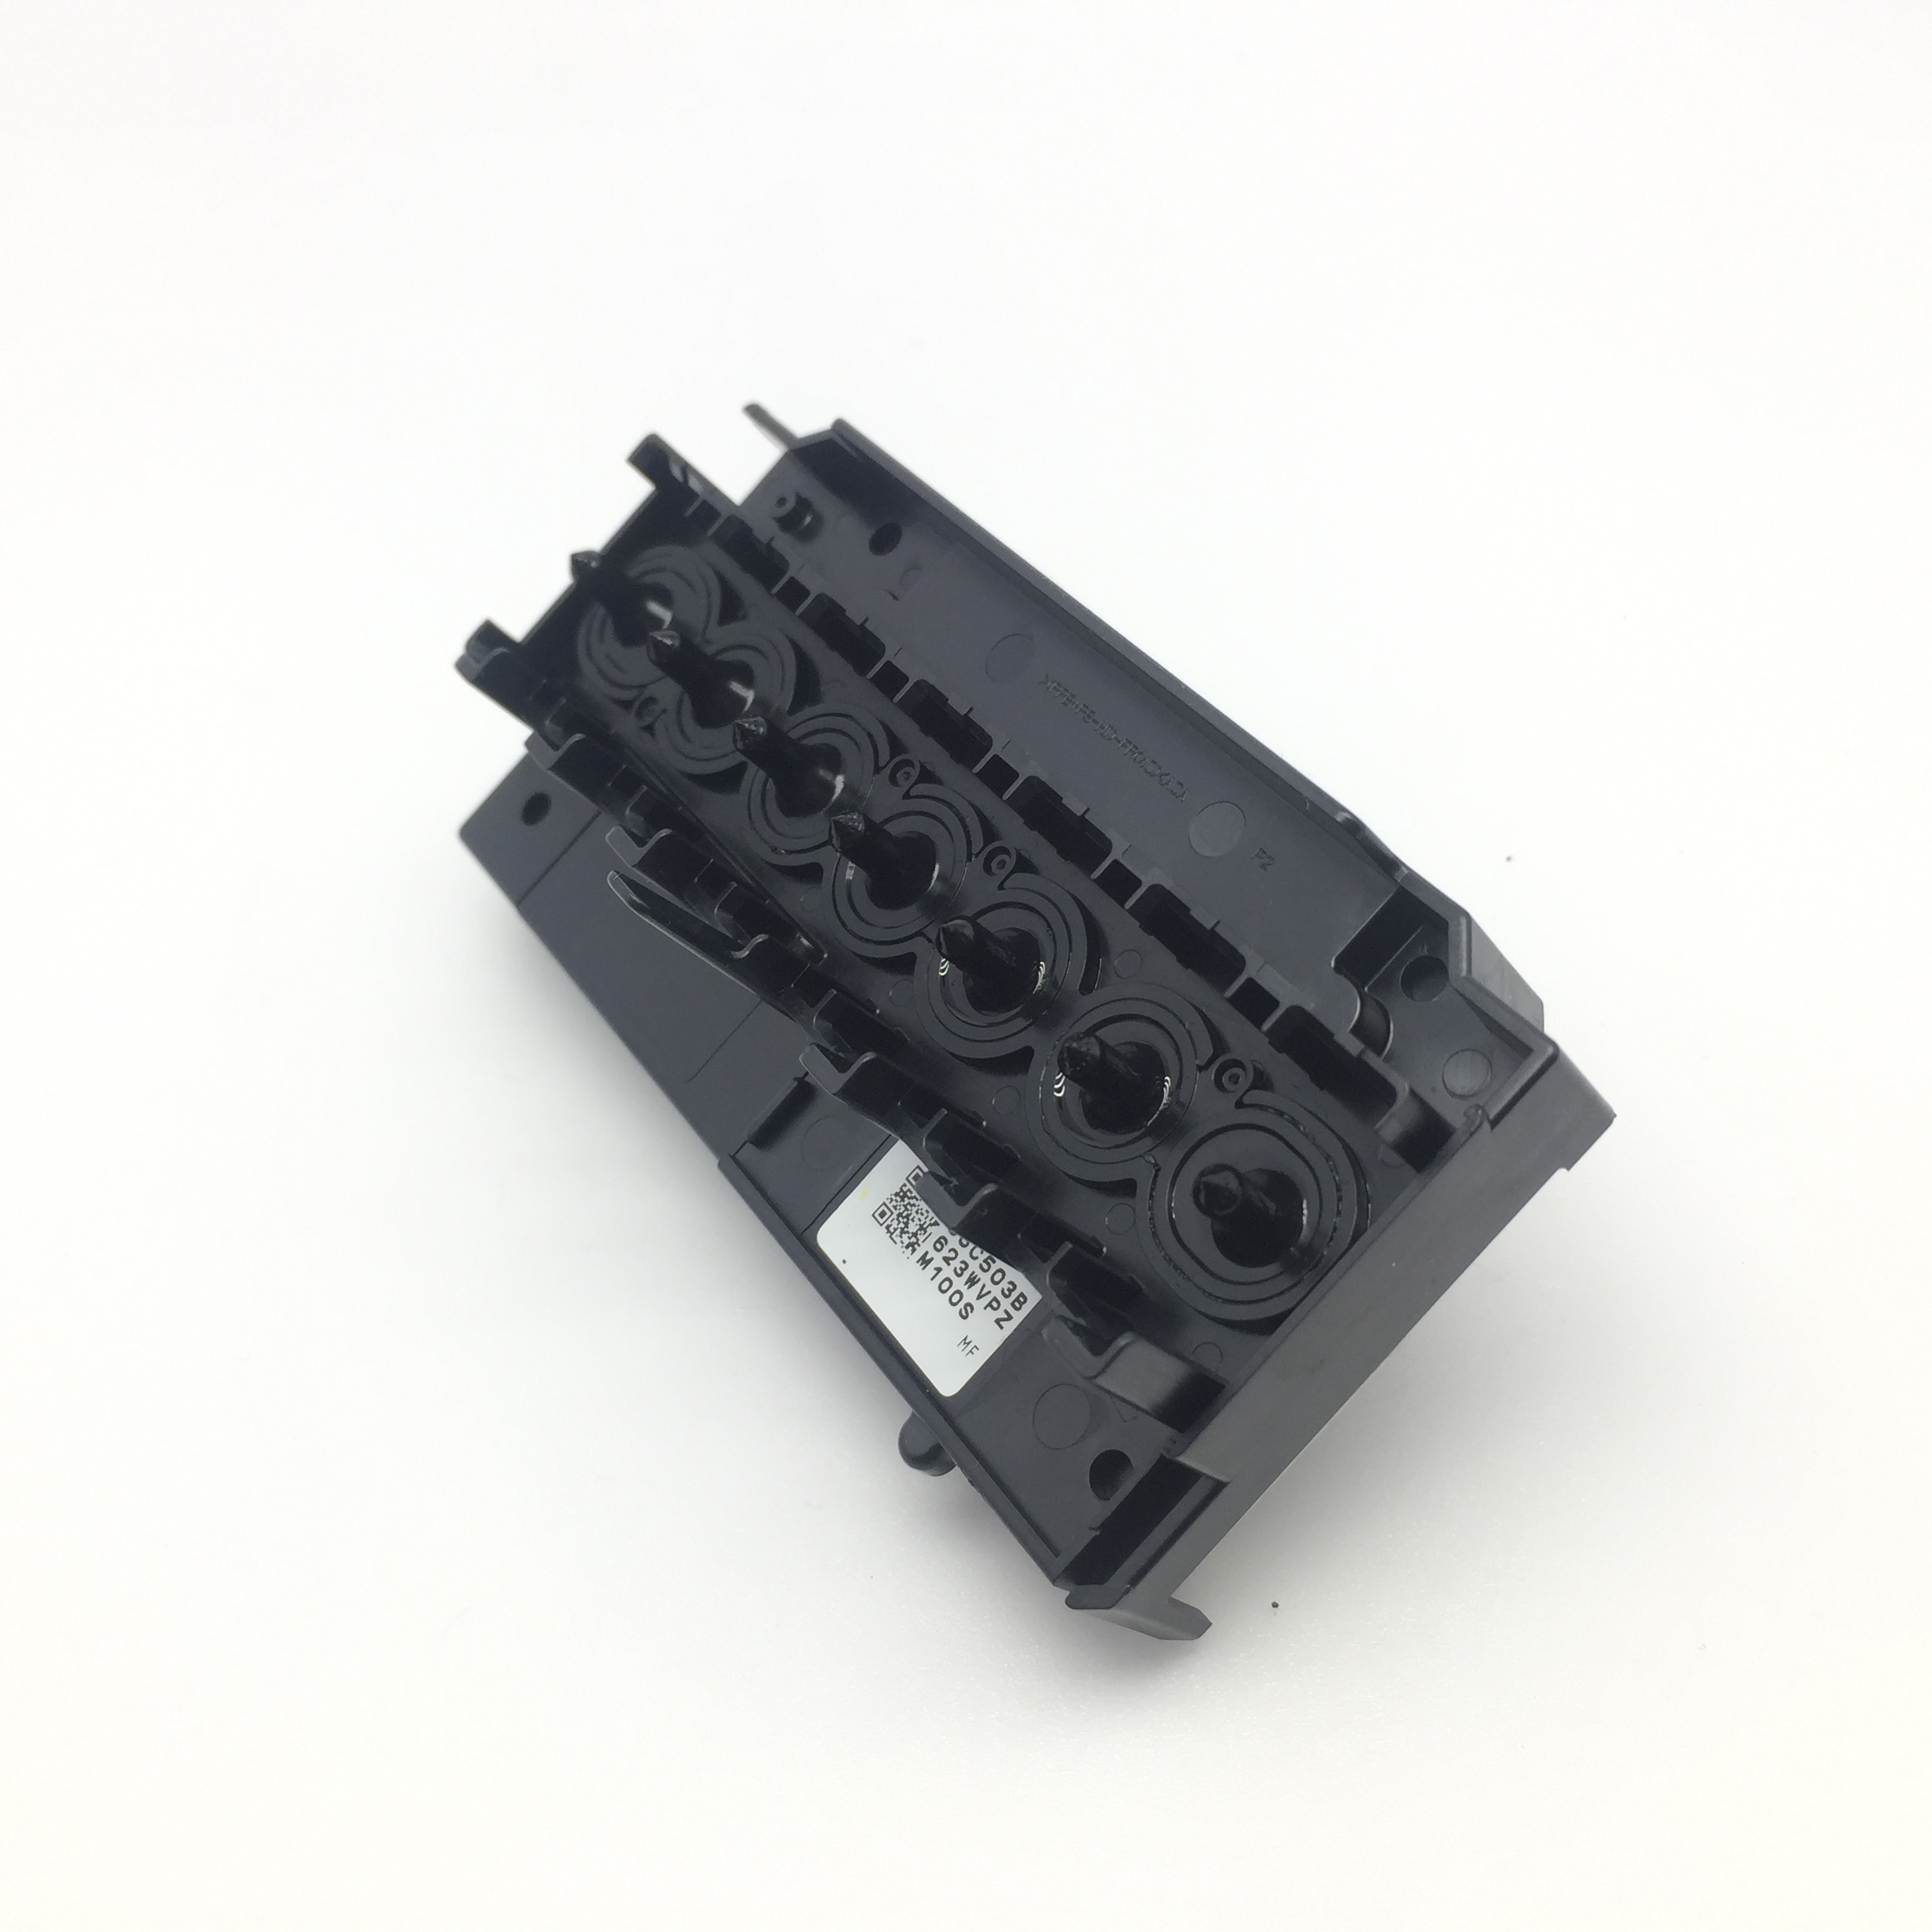 printhead print head for Epson Stylus pro 7600/9600 printer ---- F138040/F138050 f138040 print head for epson stylus pro 7600 9600 2100 2200 printer f138040 f138050 printhead